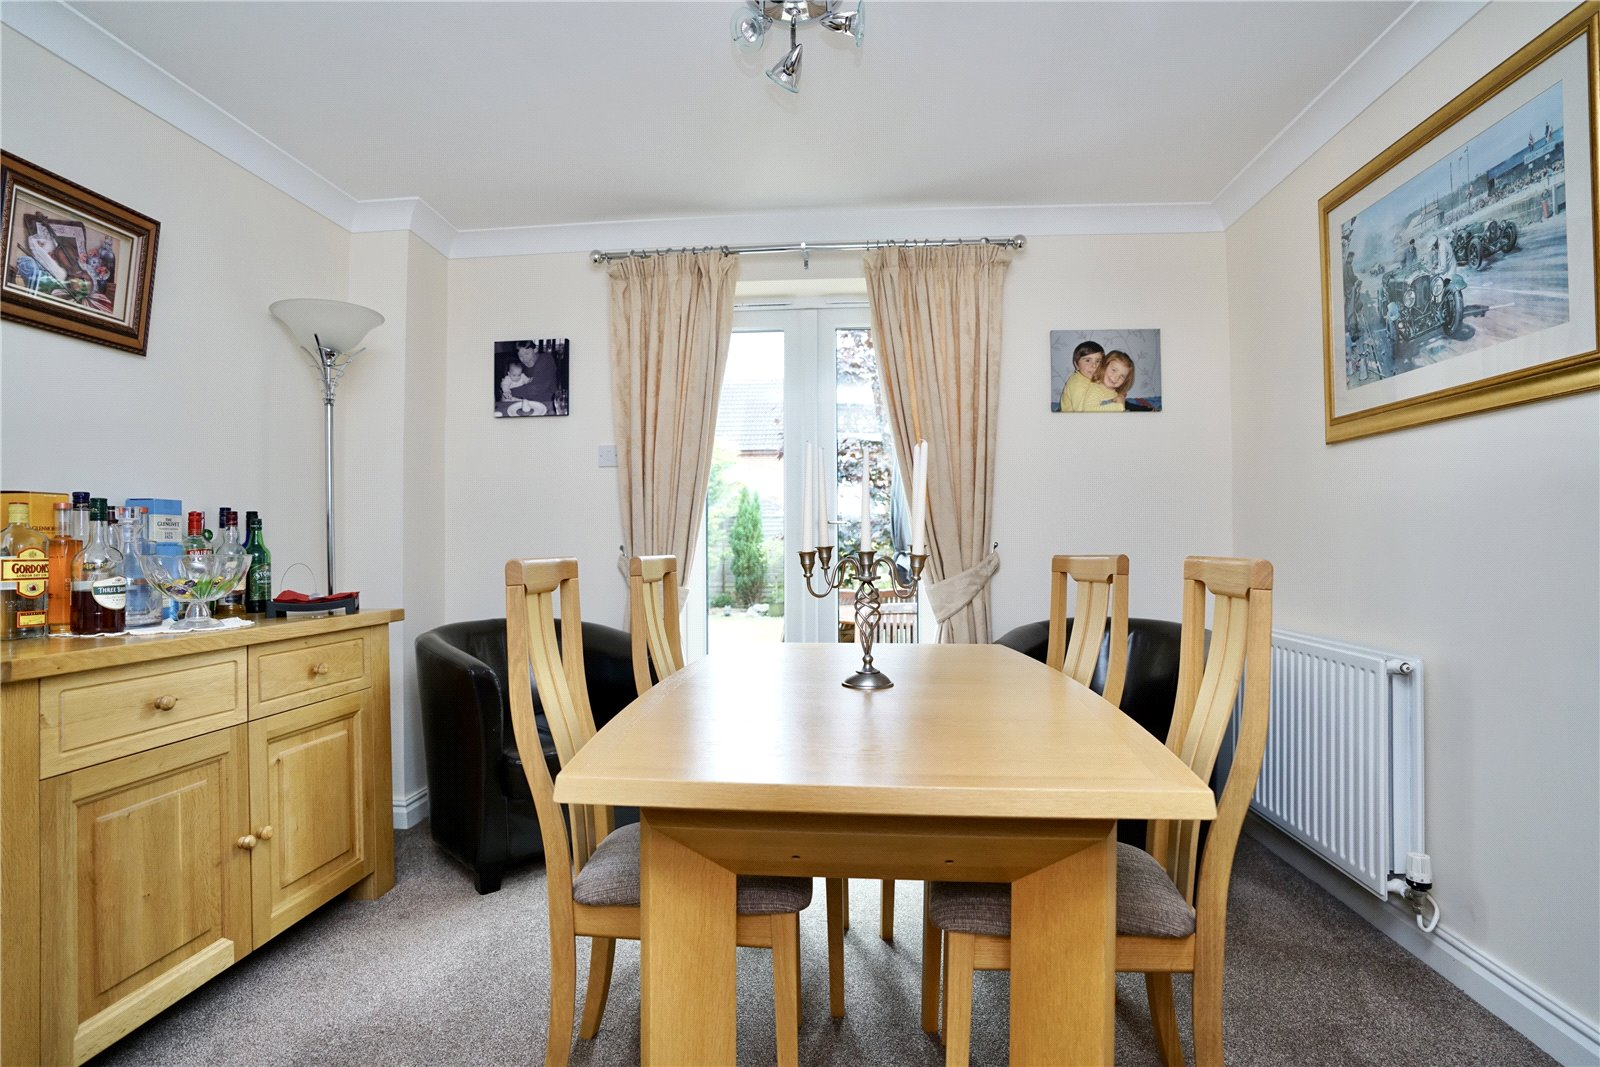 4 bed house for sale in Great Gransden 11